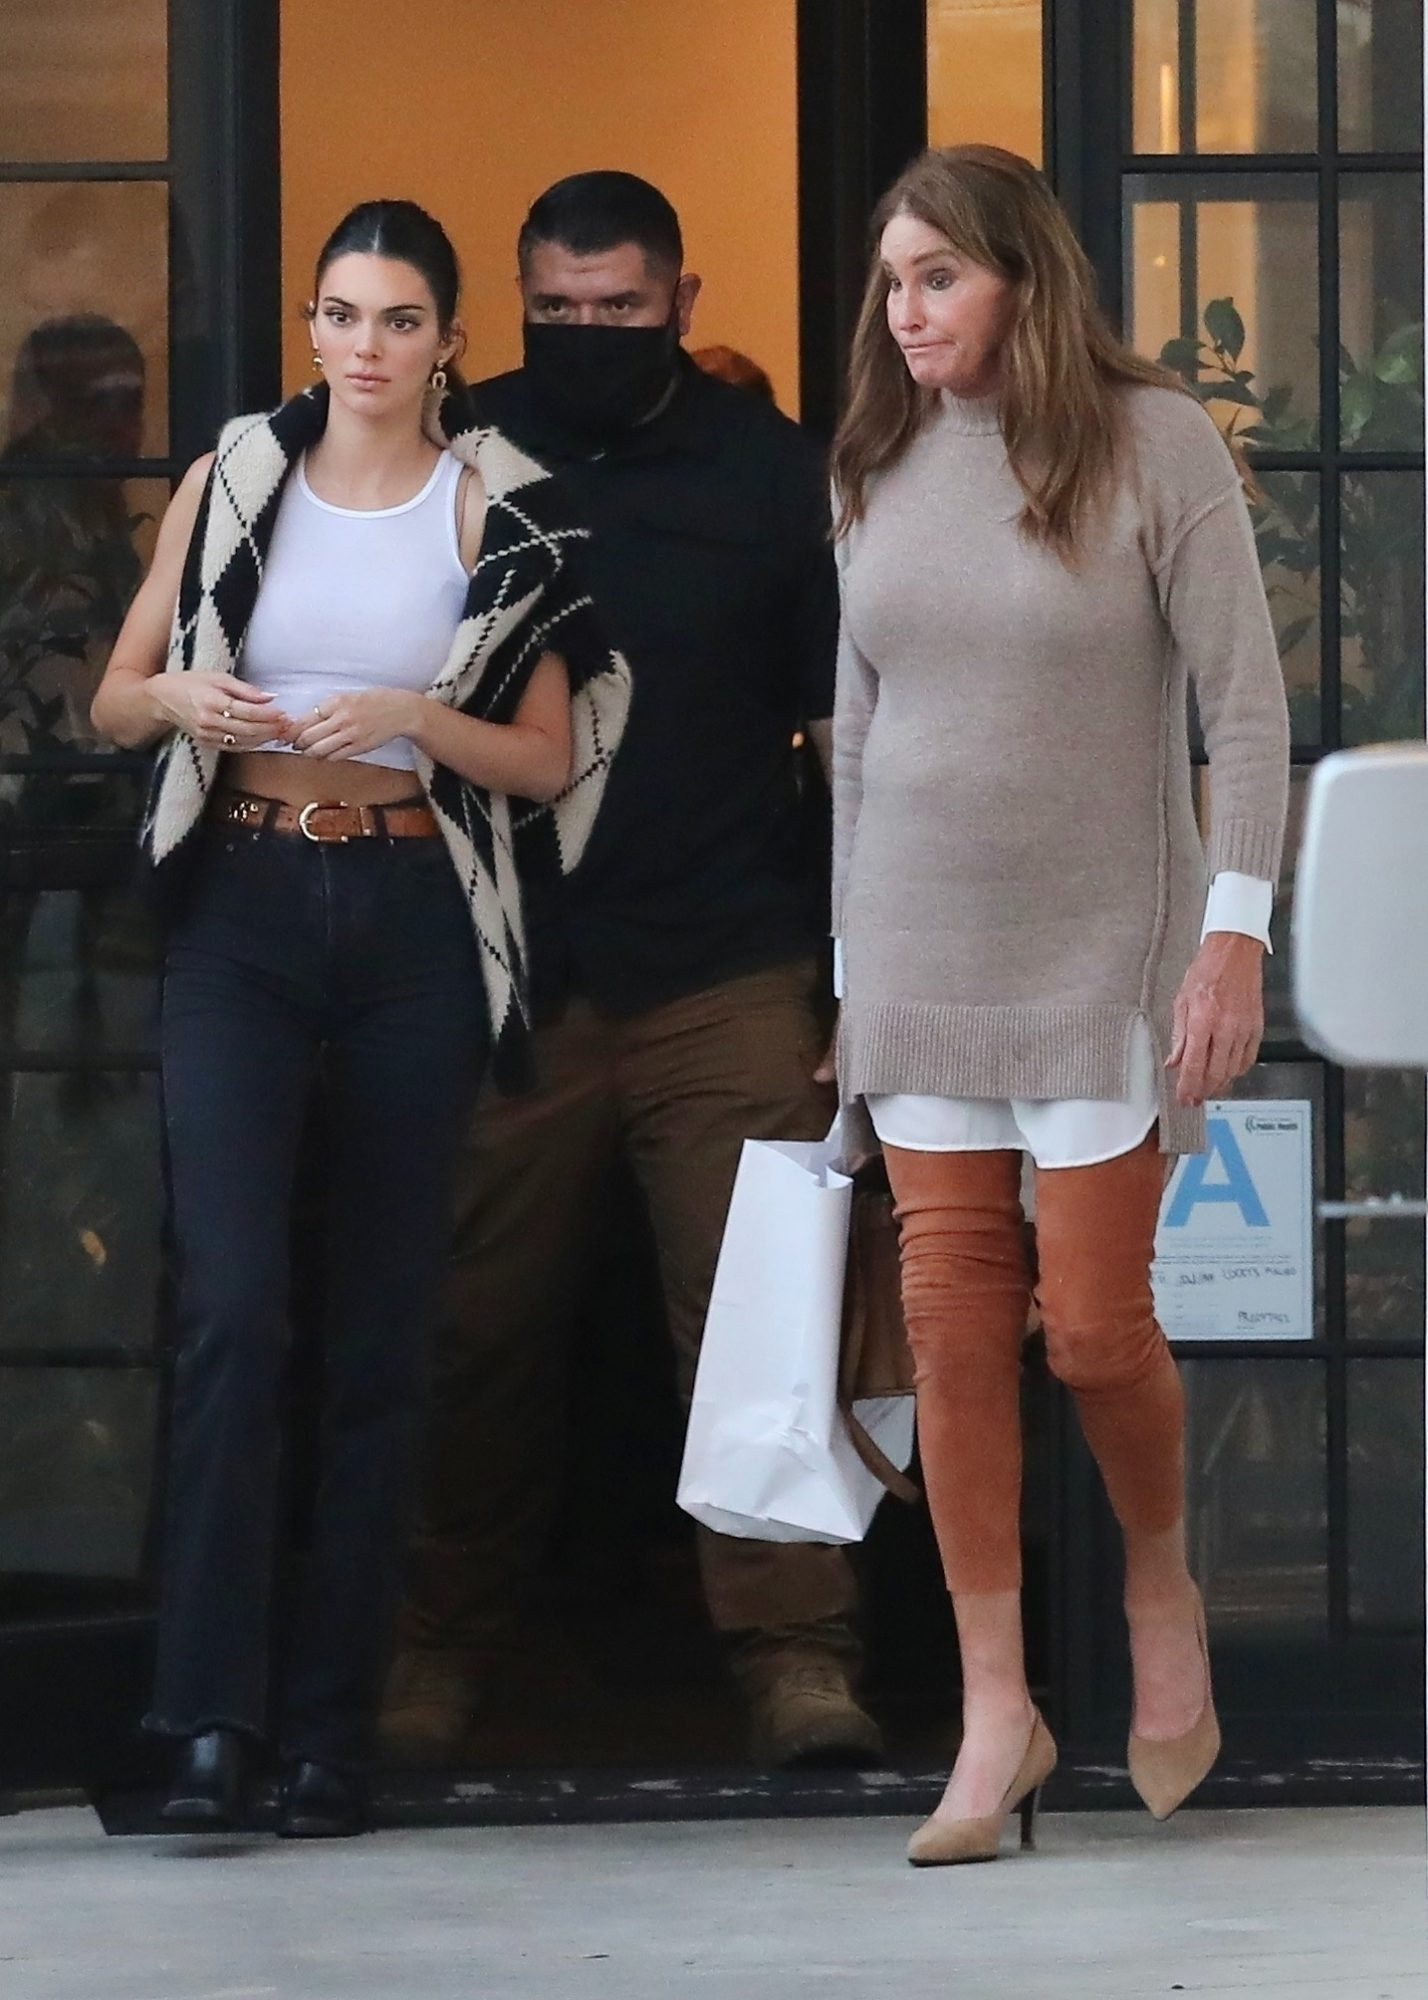 Kendall and Caitlyn Jenner Have Dinner Together at Lucky's in Malibu